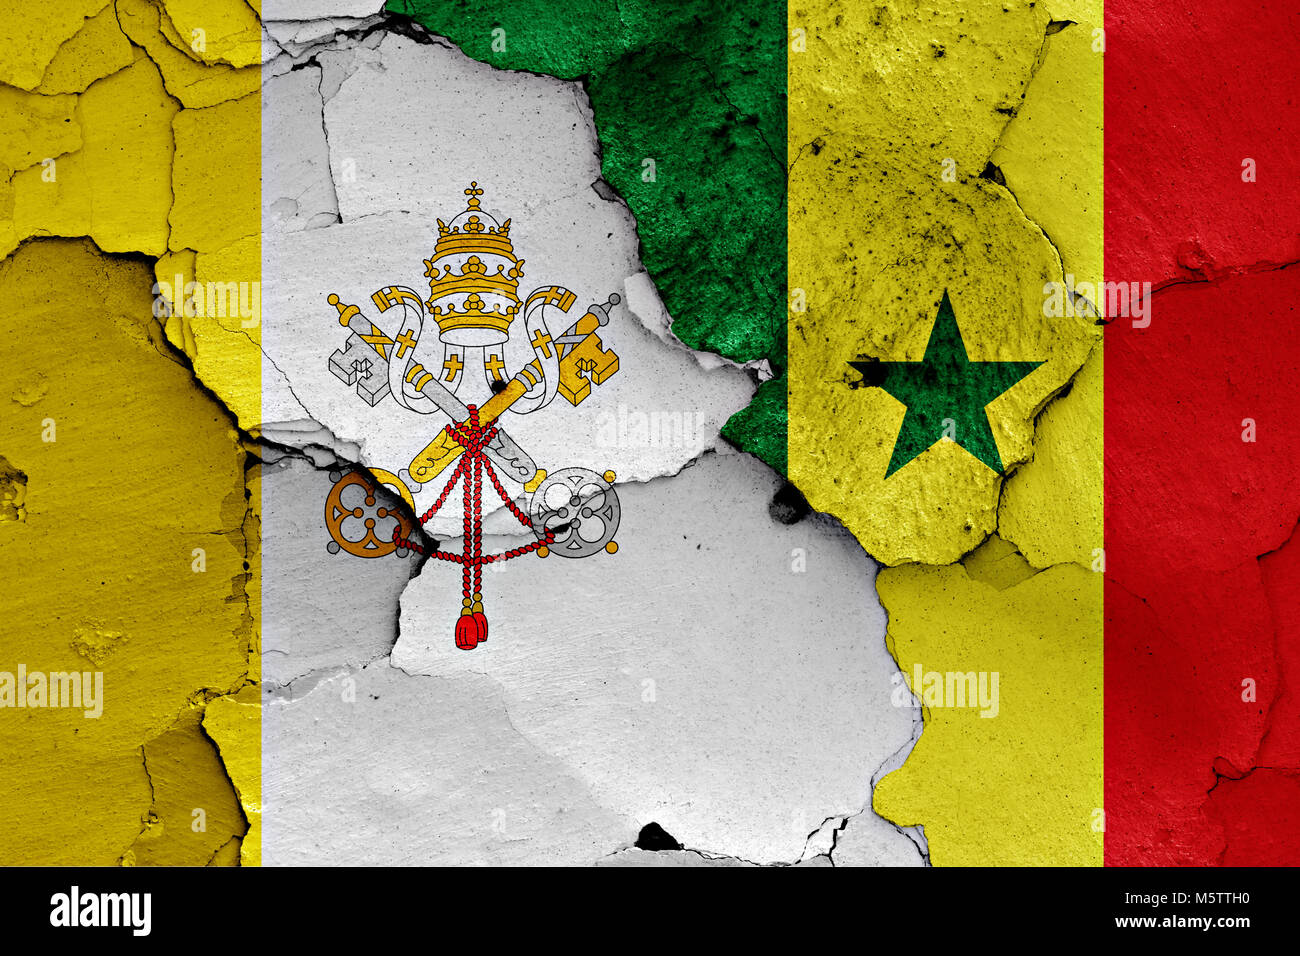 flag of Vatican and Senegal painted on cracked wall - Stock Image